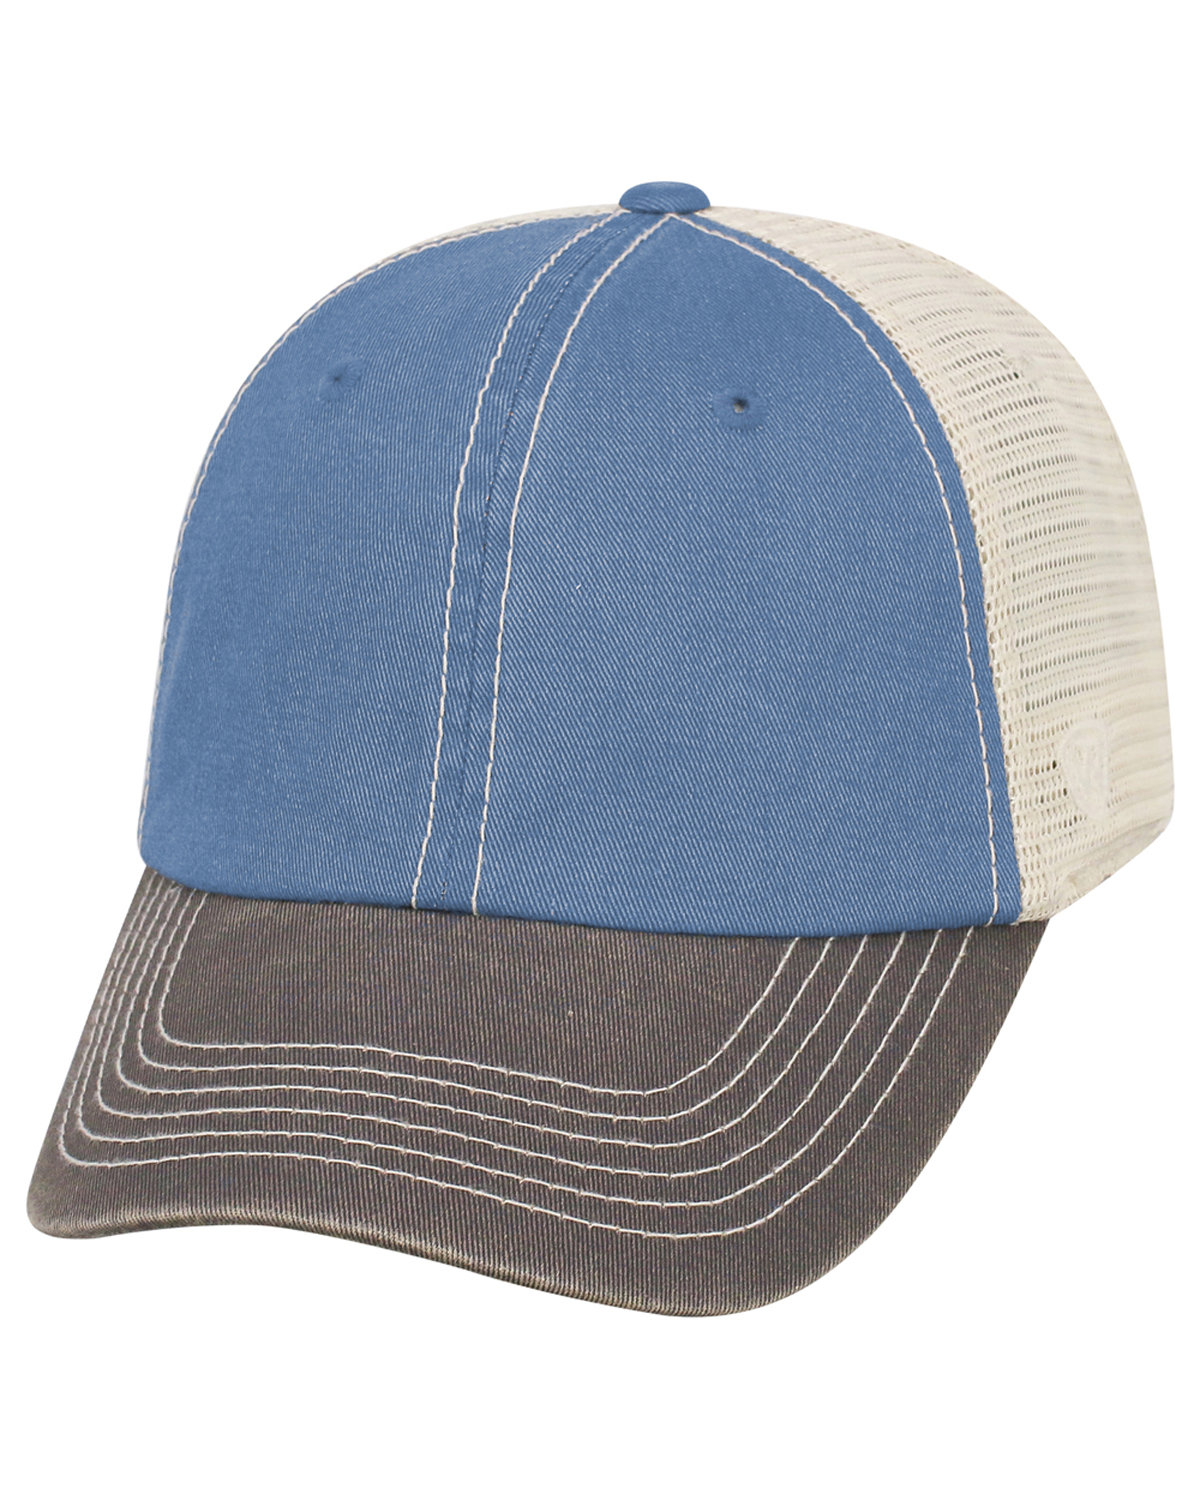 Top Of The World Adult Offroad Cap DENIM